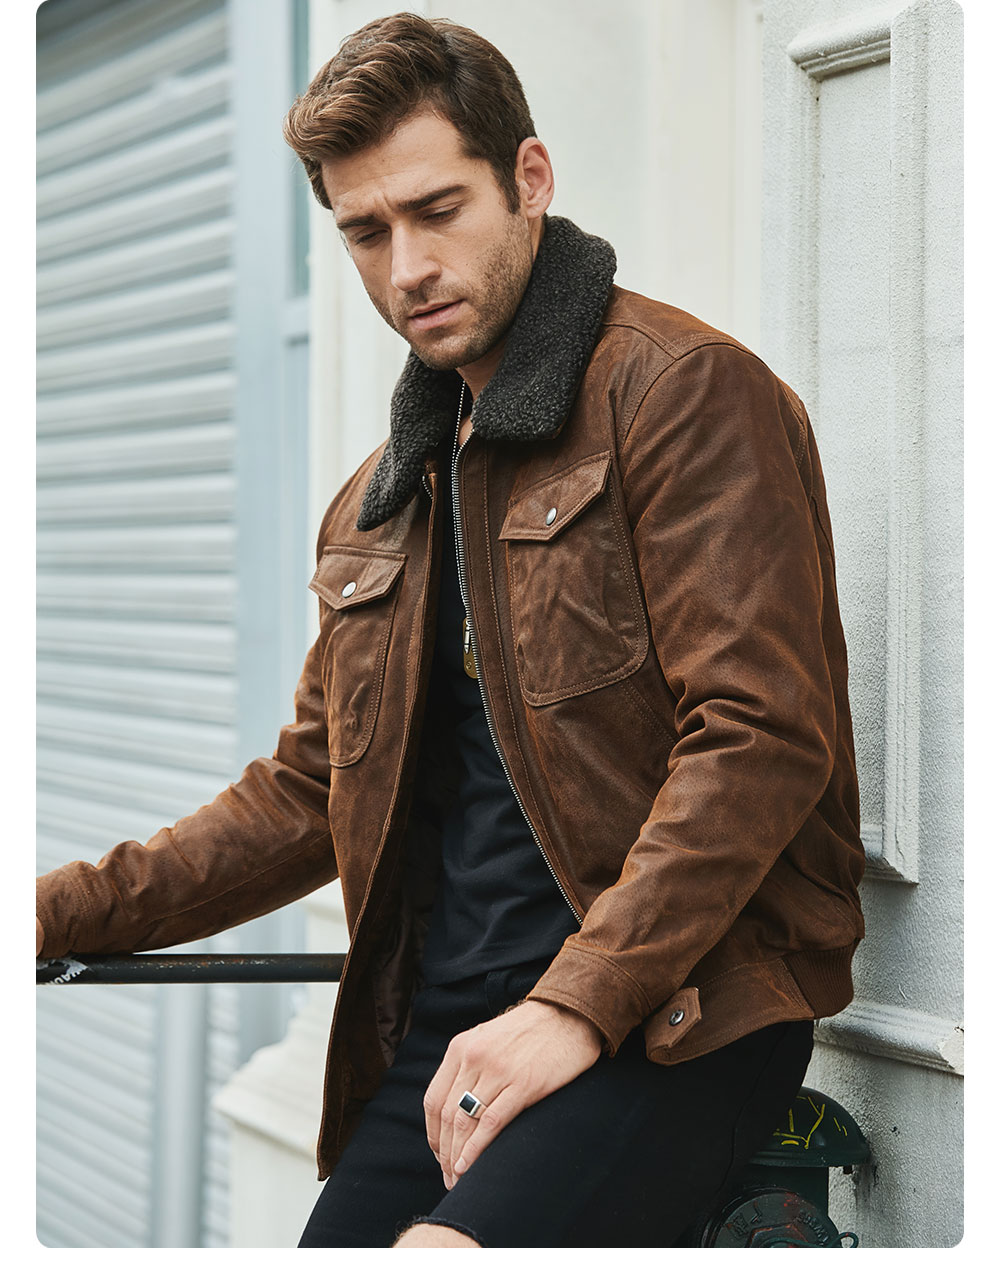 H7f1ef84b7f724263a91b1459d55f66c6Q FLAVOR Men's Real Leather Jacket Genuine Leather jacket with faux fur collar male Motorcycle warm coat Genuine Leather Jacket